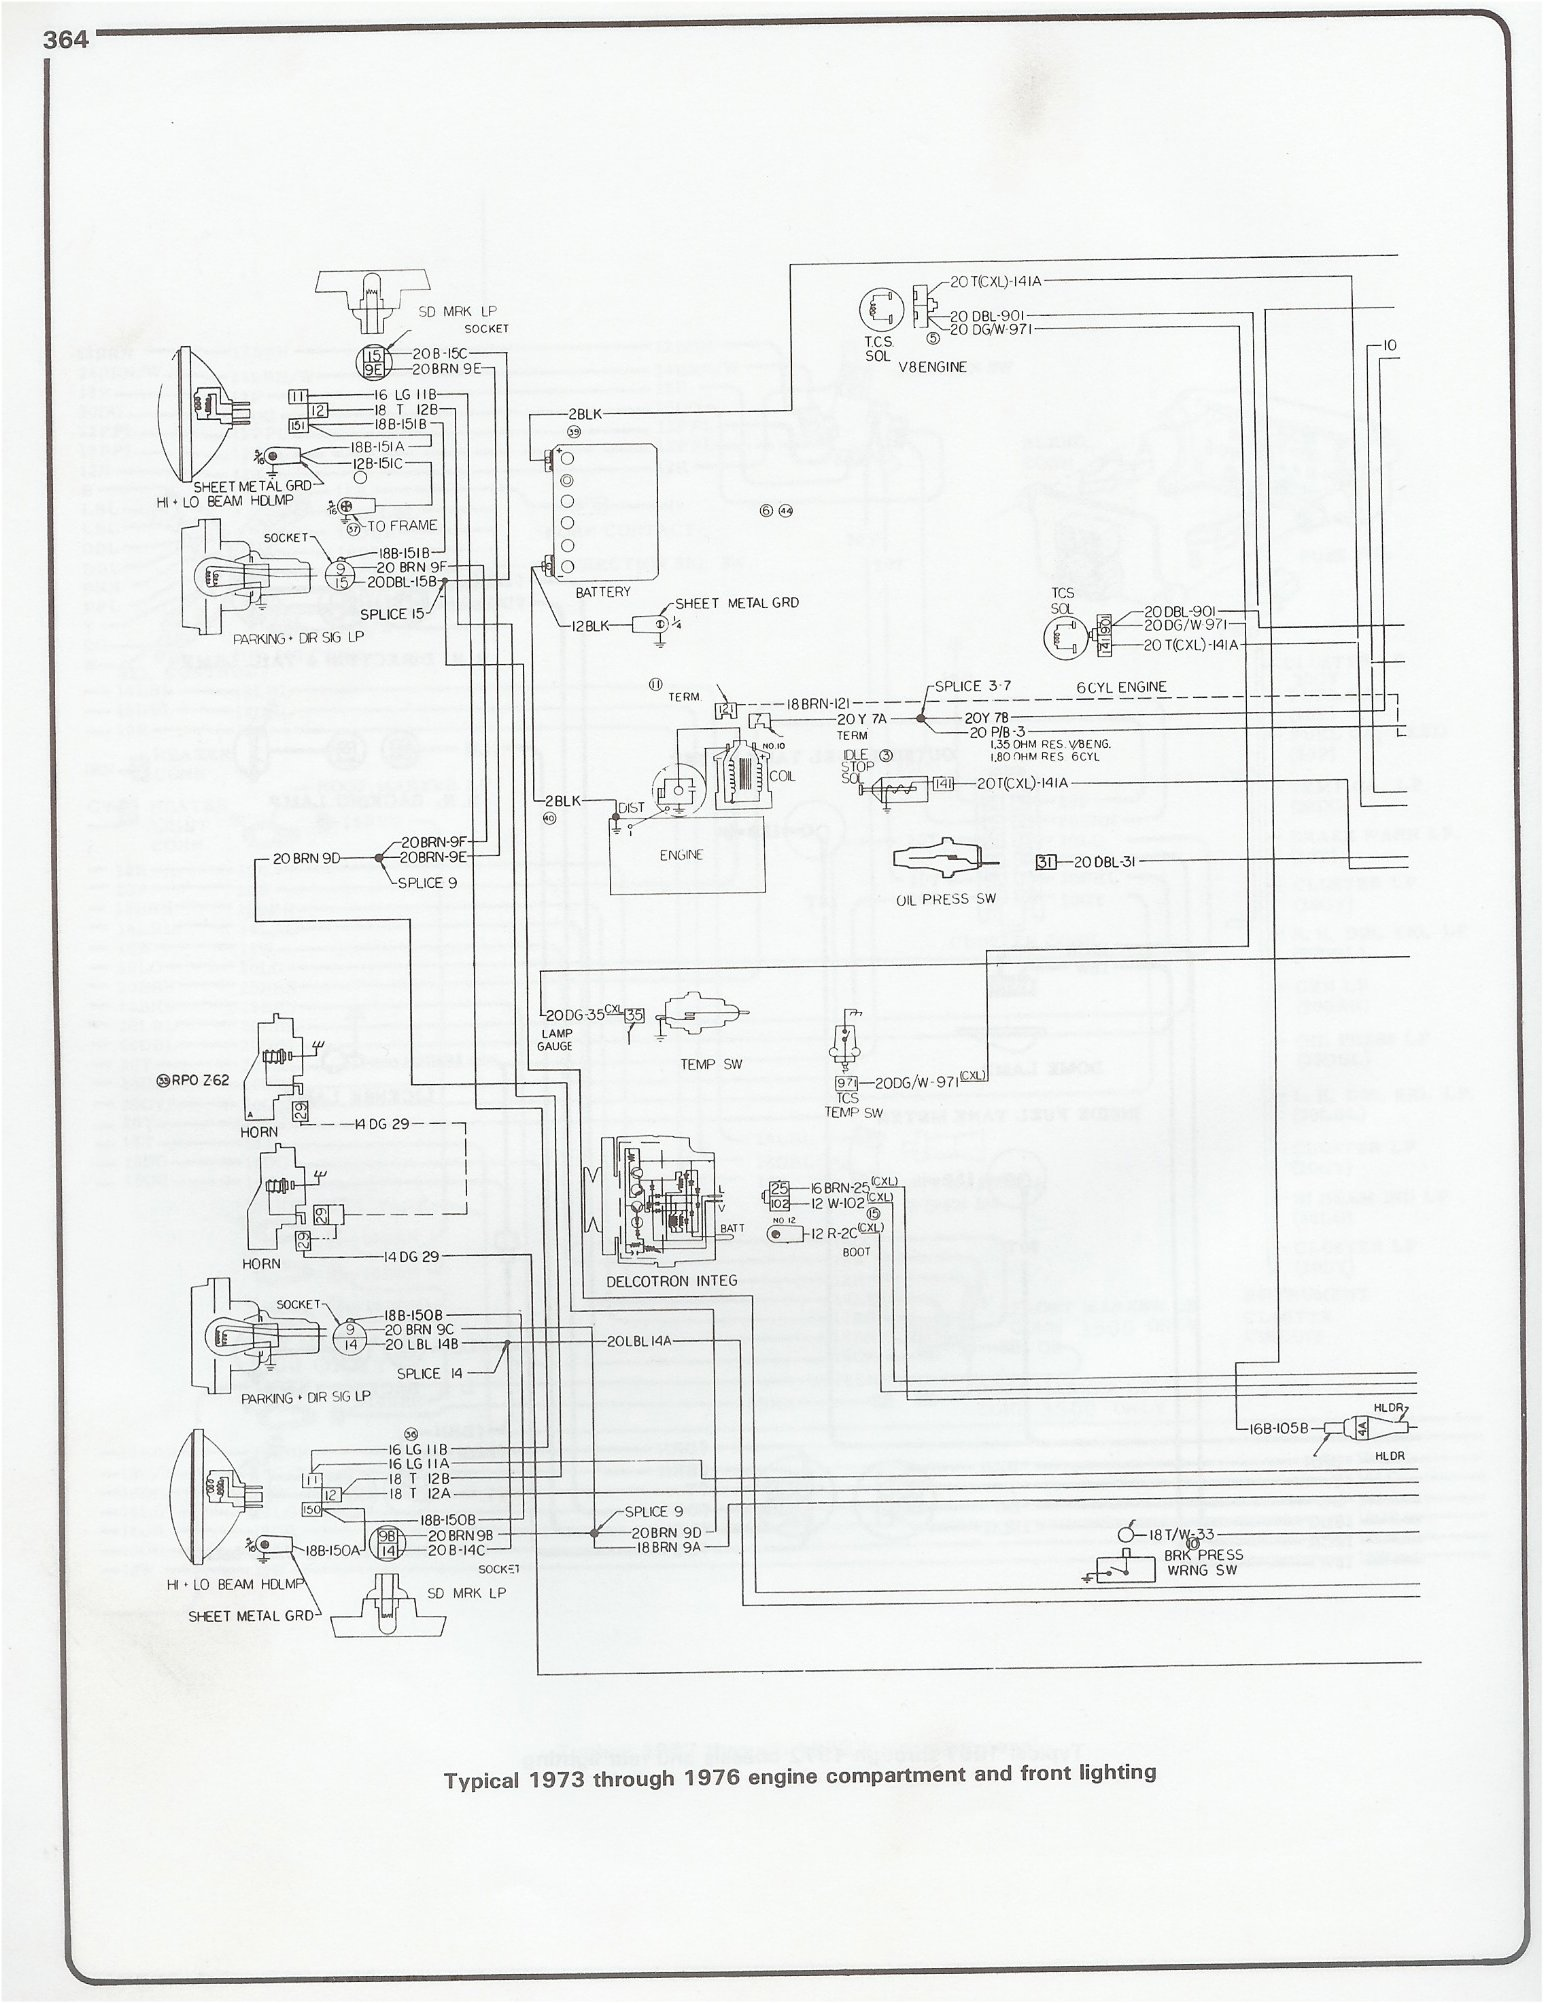 Complete 73 87 Wiring Diagrams 1982 Camaro Diagram Charging System 76 Engine And Front Lighting